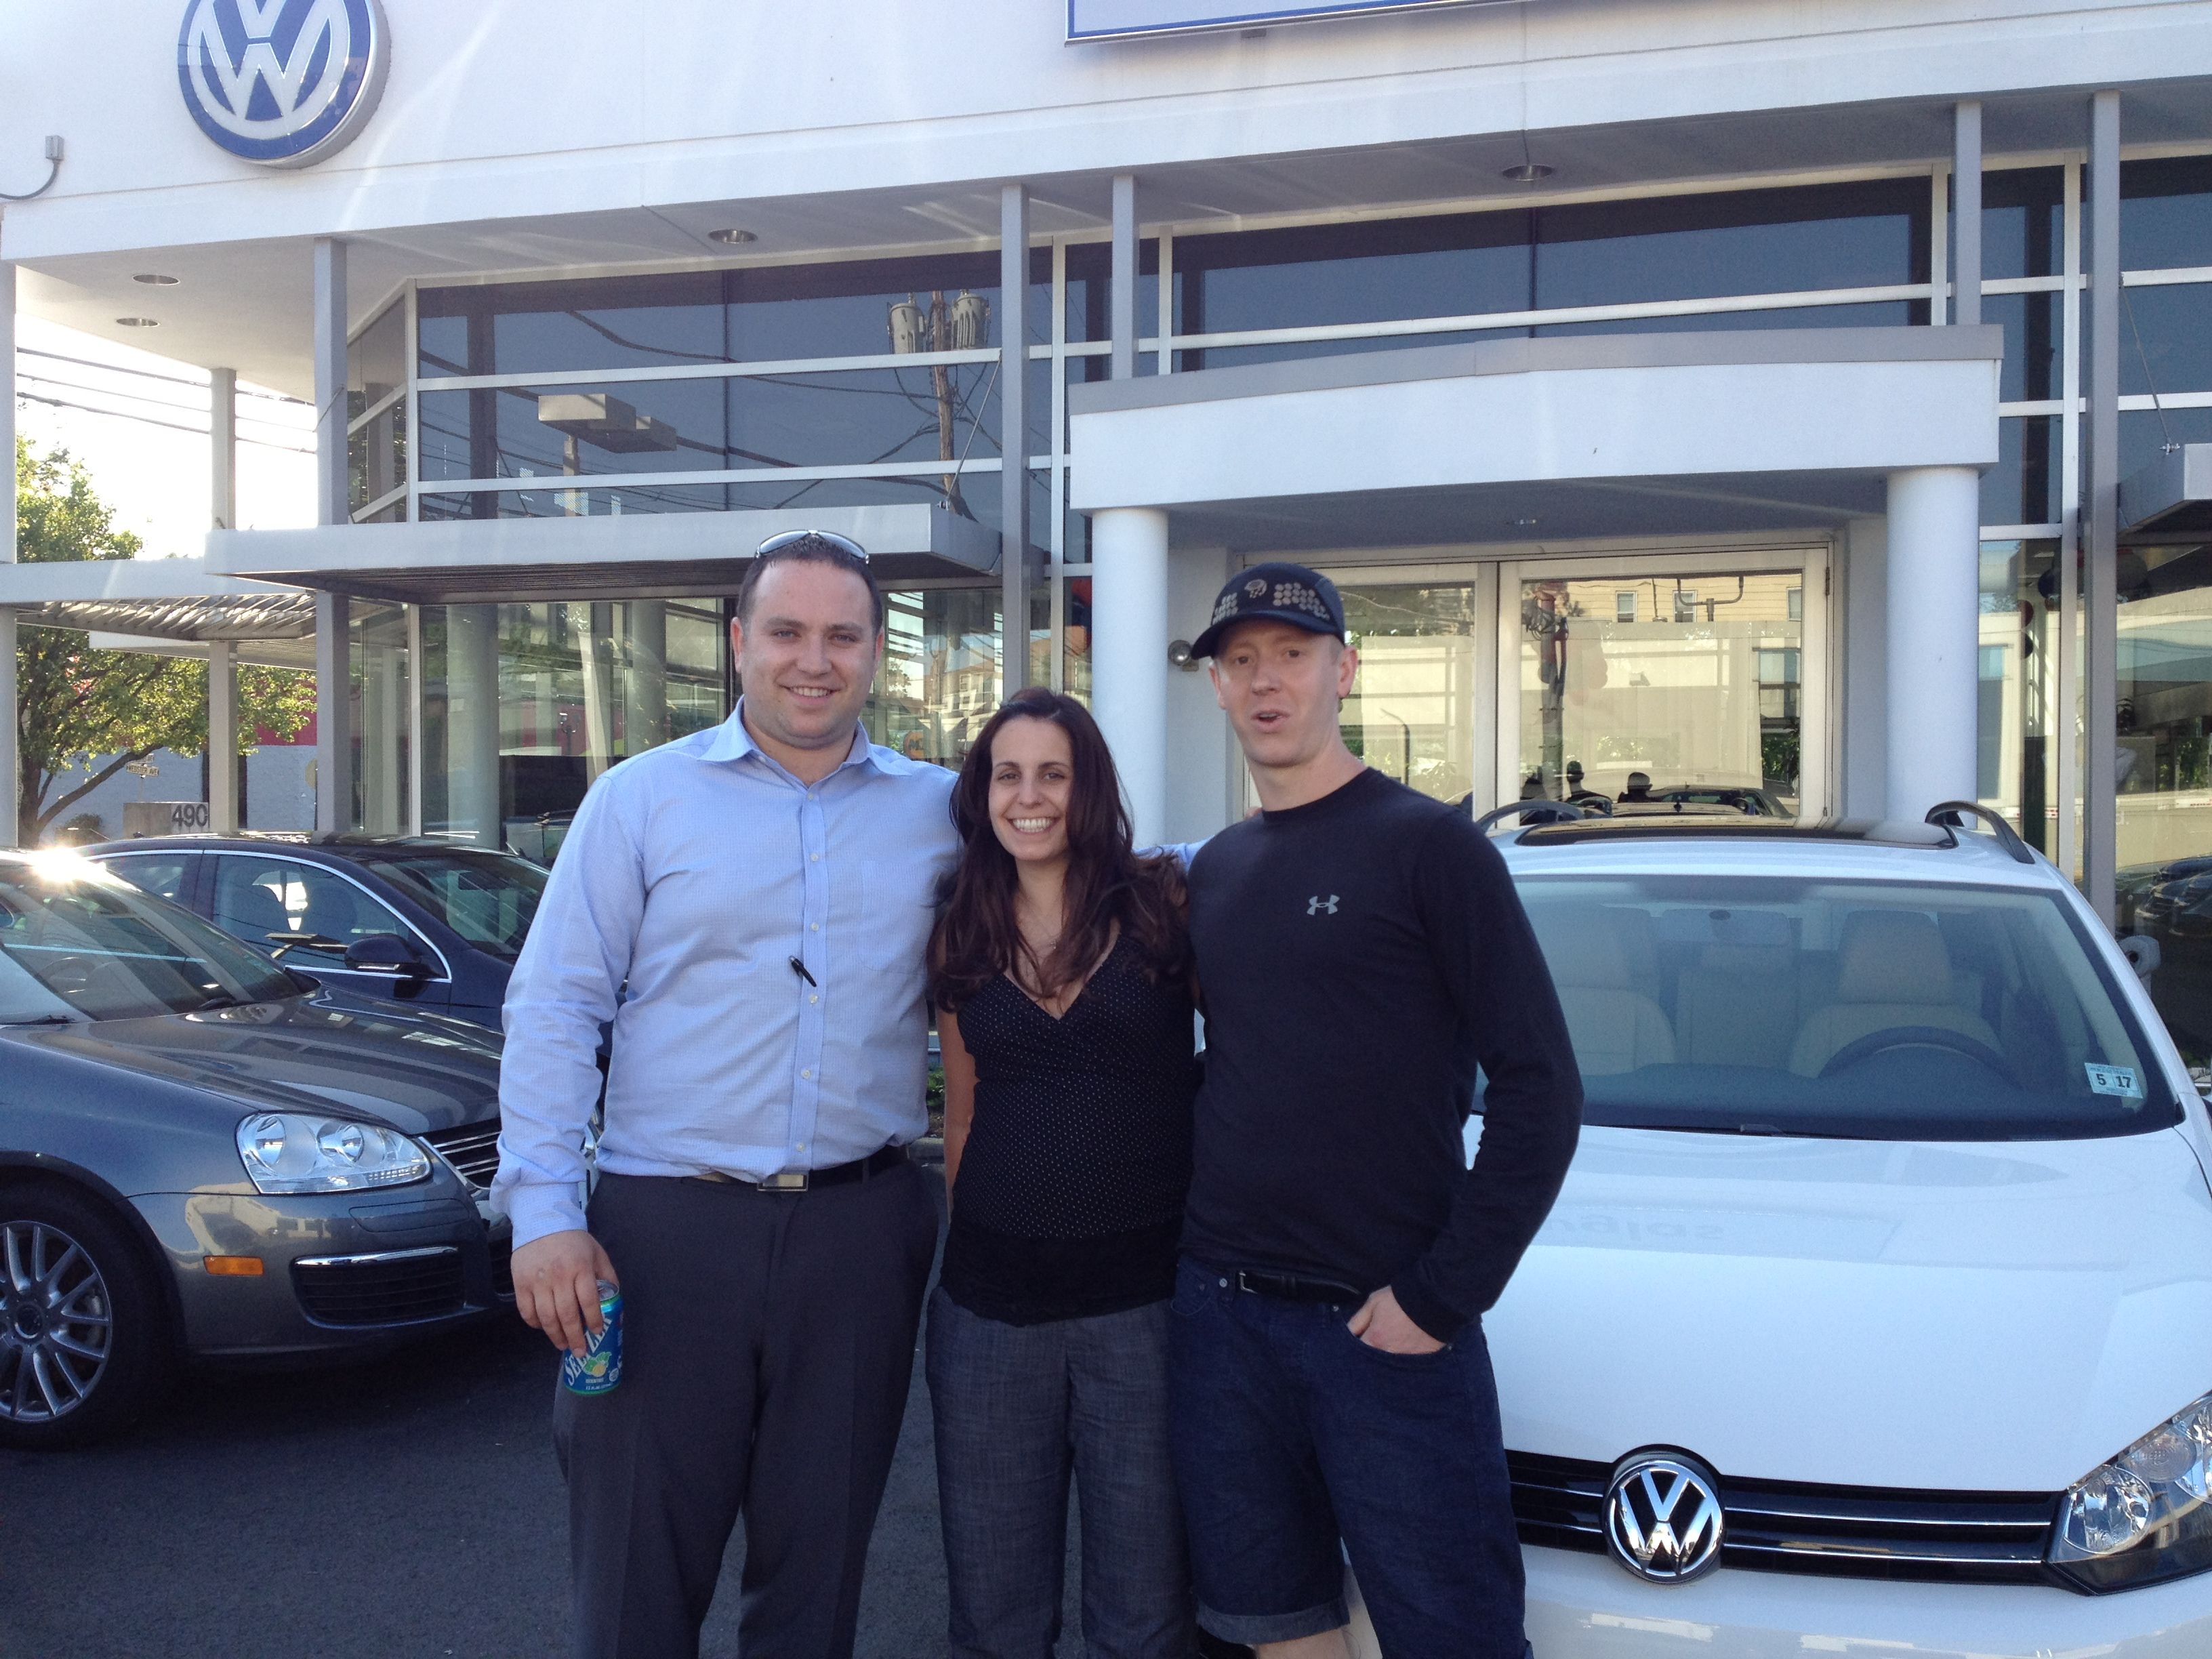 Anna And Travis Markouris Of Morristown Nj Picking Up Their 2012 Vw Sportwagen From Douglas Vw Sales Consultant Vlad Vosko Cars For Sale Volkswagen Livingston